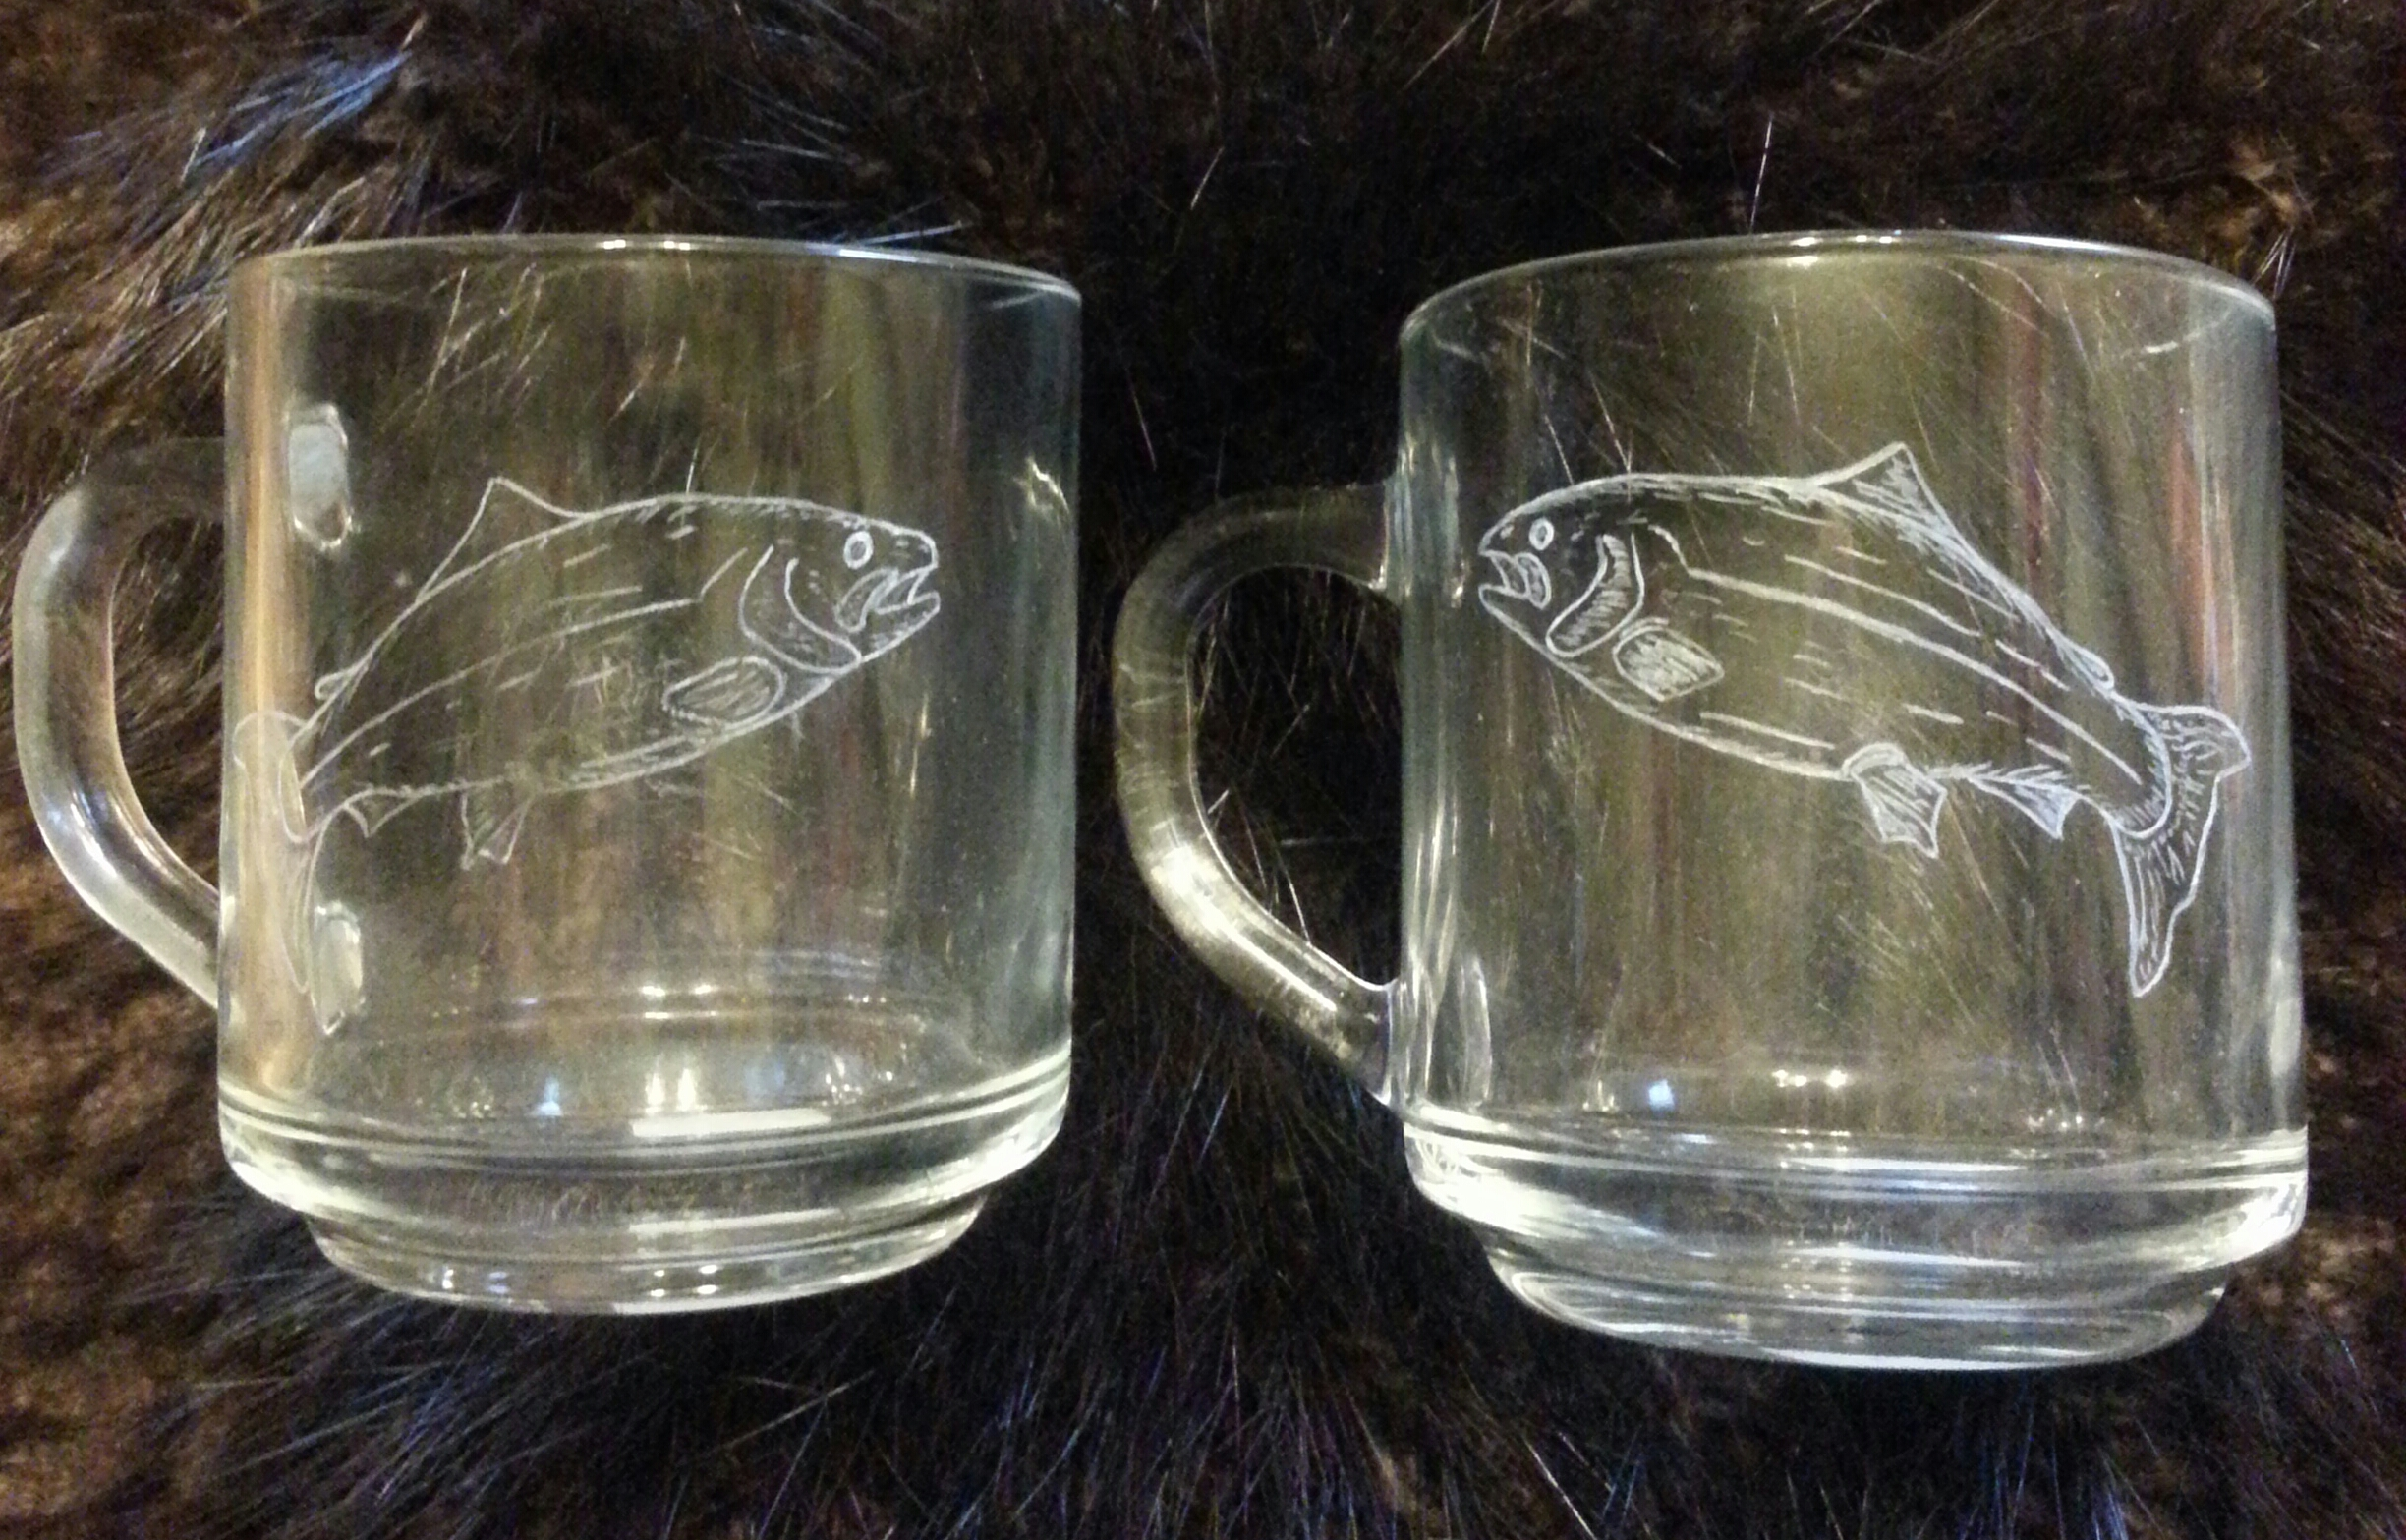 Salmon engraved coffee mugs... $30.00 ea or $50.00 for 2